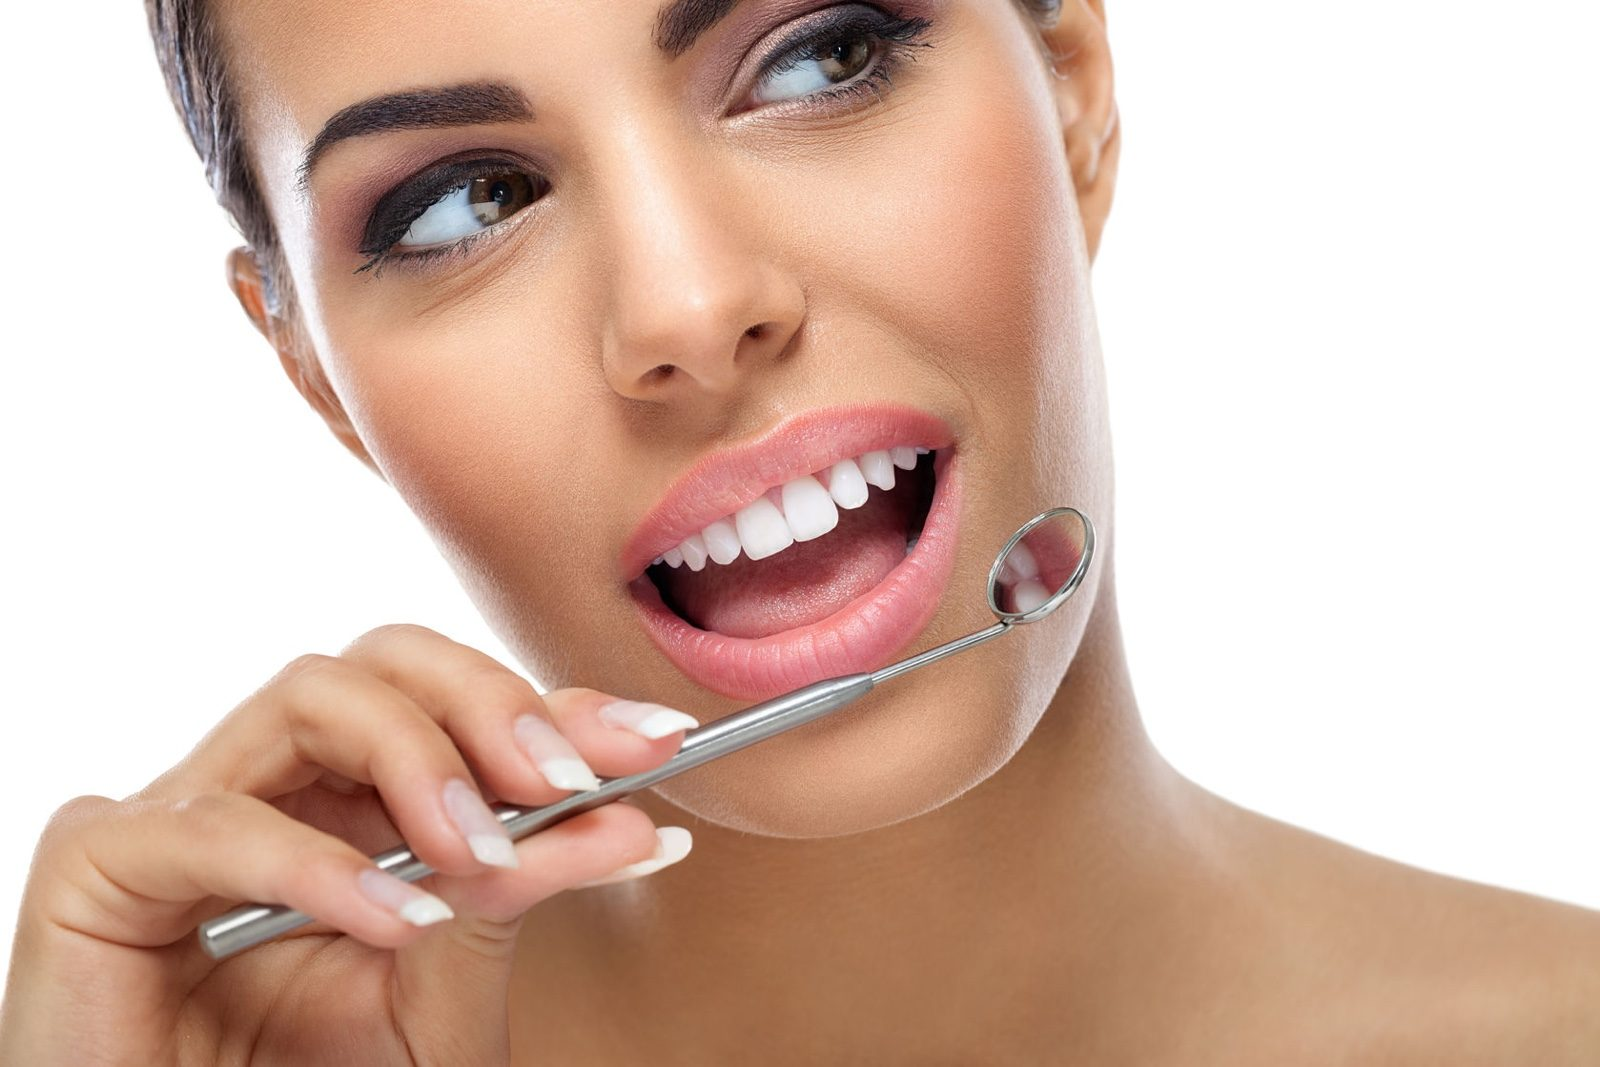 Treatment at Smileasy Dental & Orthodontics